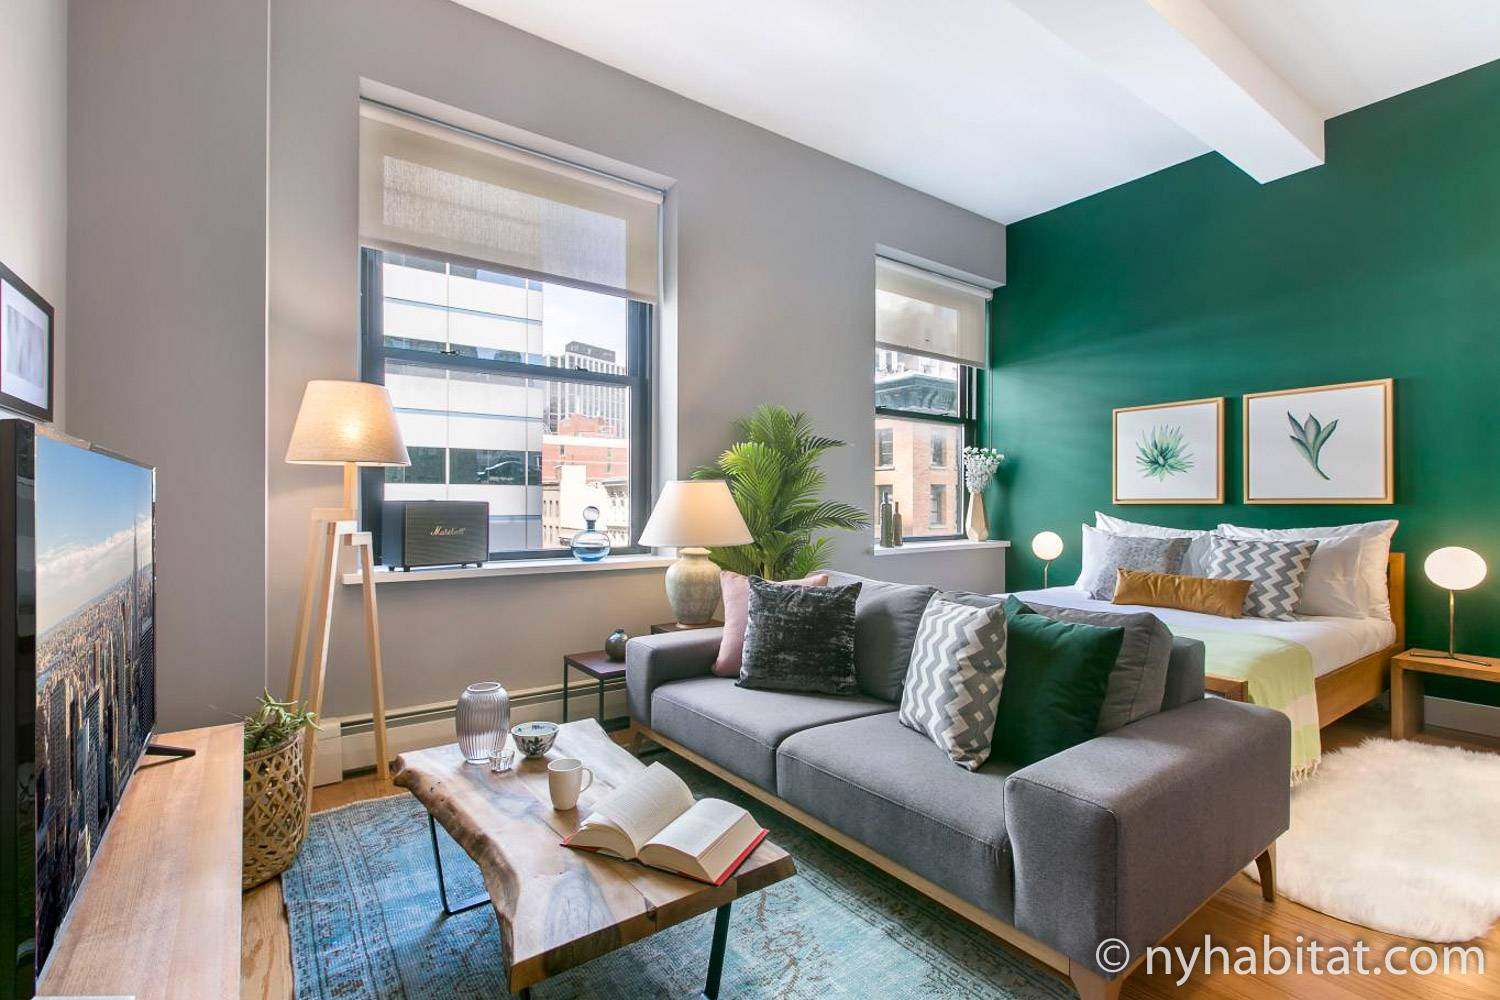 Image of NY-17700 furnished studio in Tribeca with sofa and bed by an emerald green accent wall